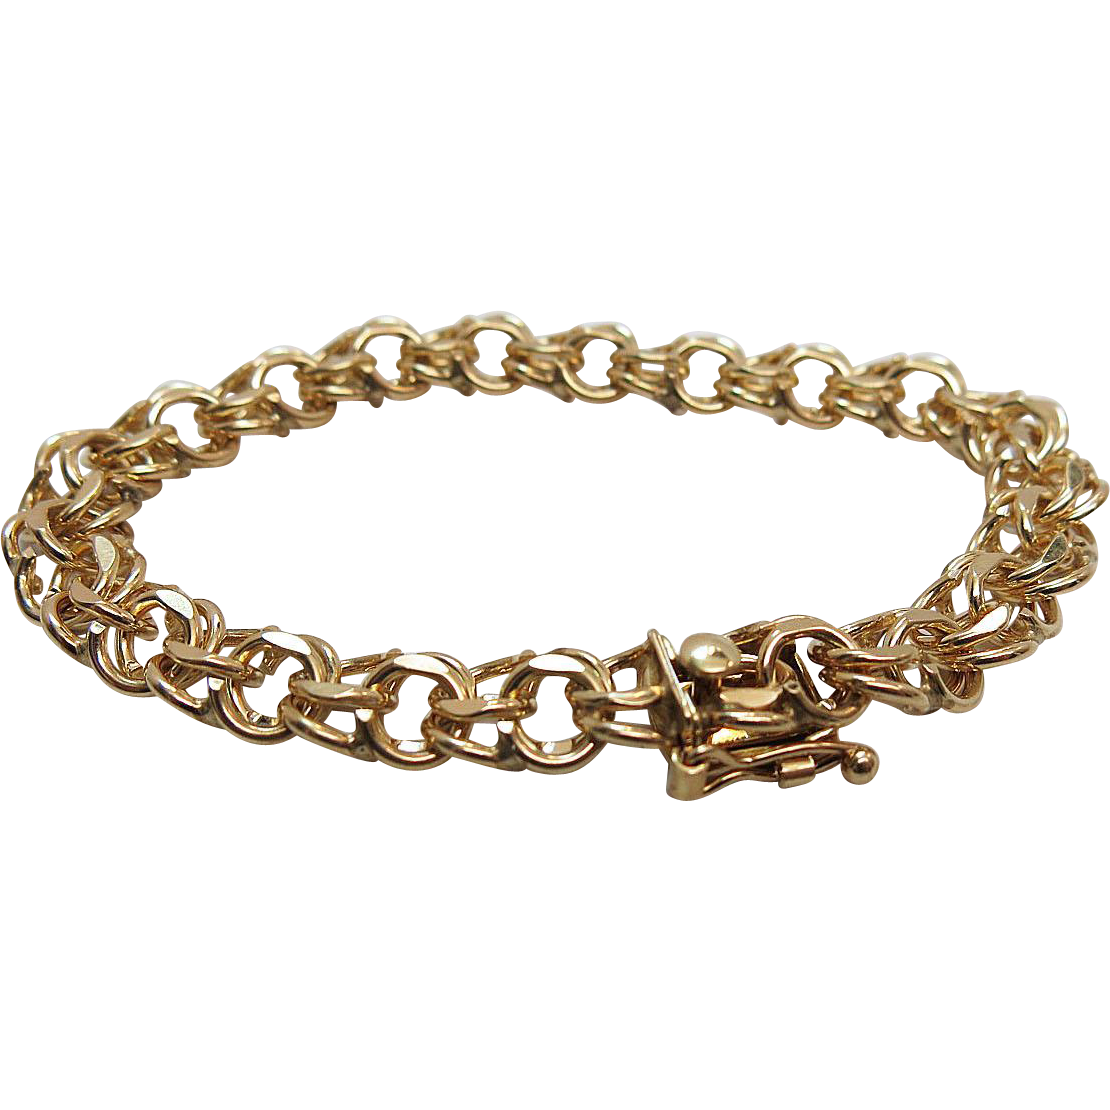 14k Yellow Gold Charm Bracelet: 1960's Vintage Heavy 14K Yellow Gold Double Curb Link